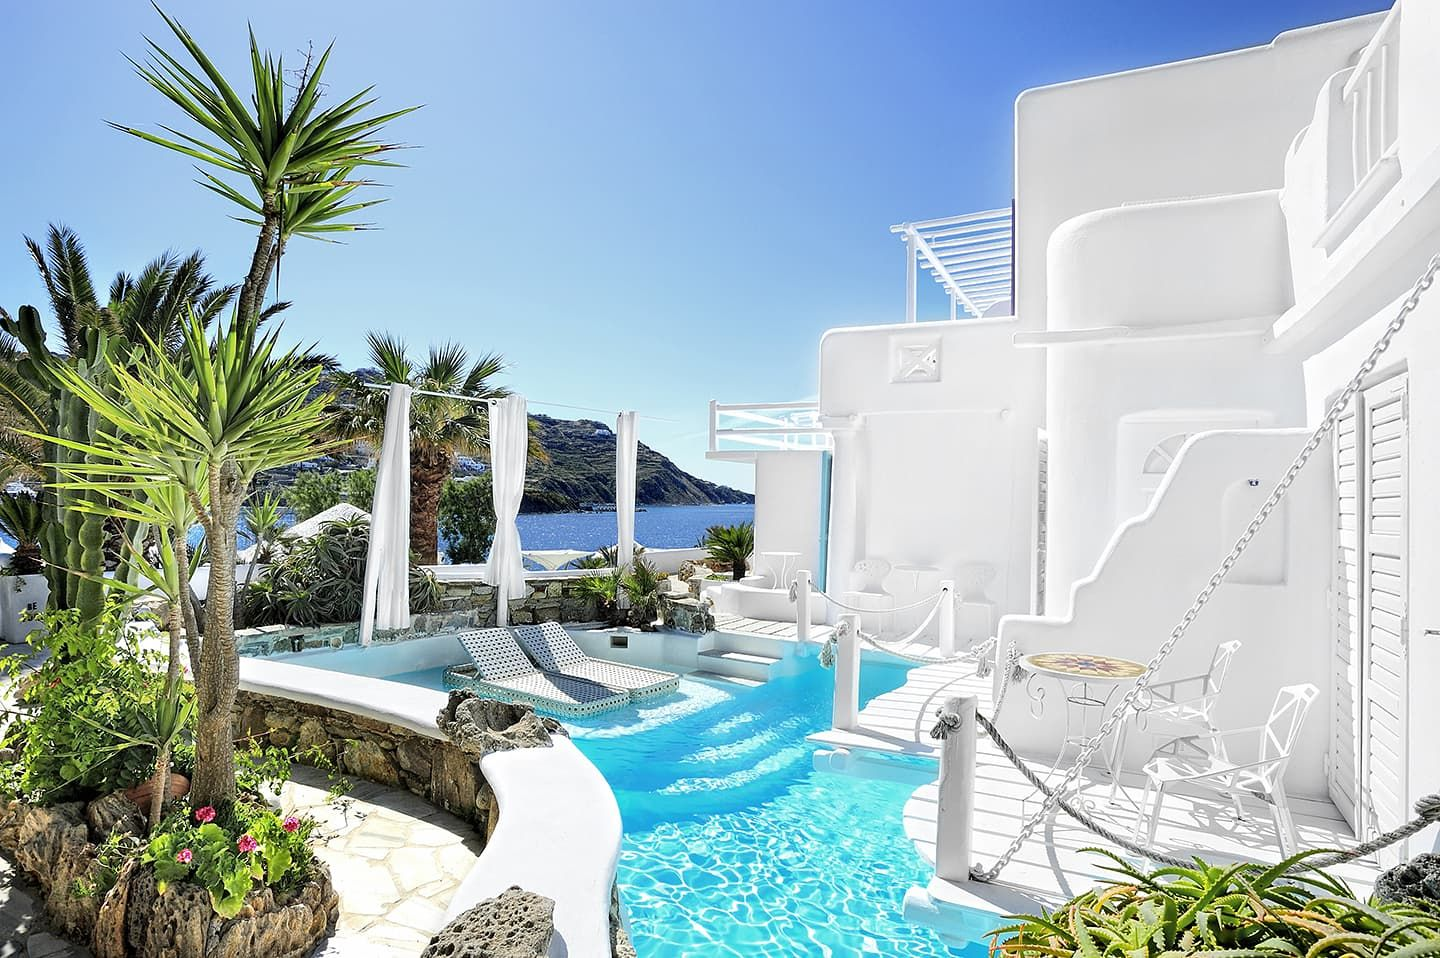 Kivotos Mykonos Hotel stylish whitewashed Royal 2 Bedroom Suite & its private pool area by the sea